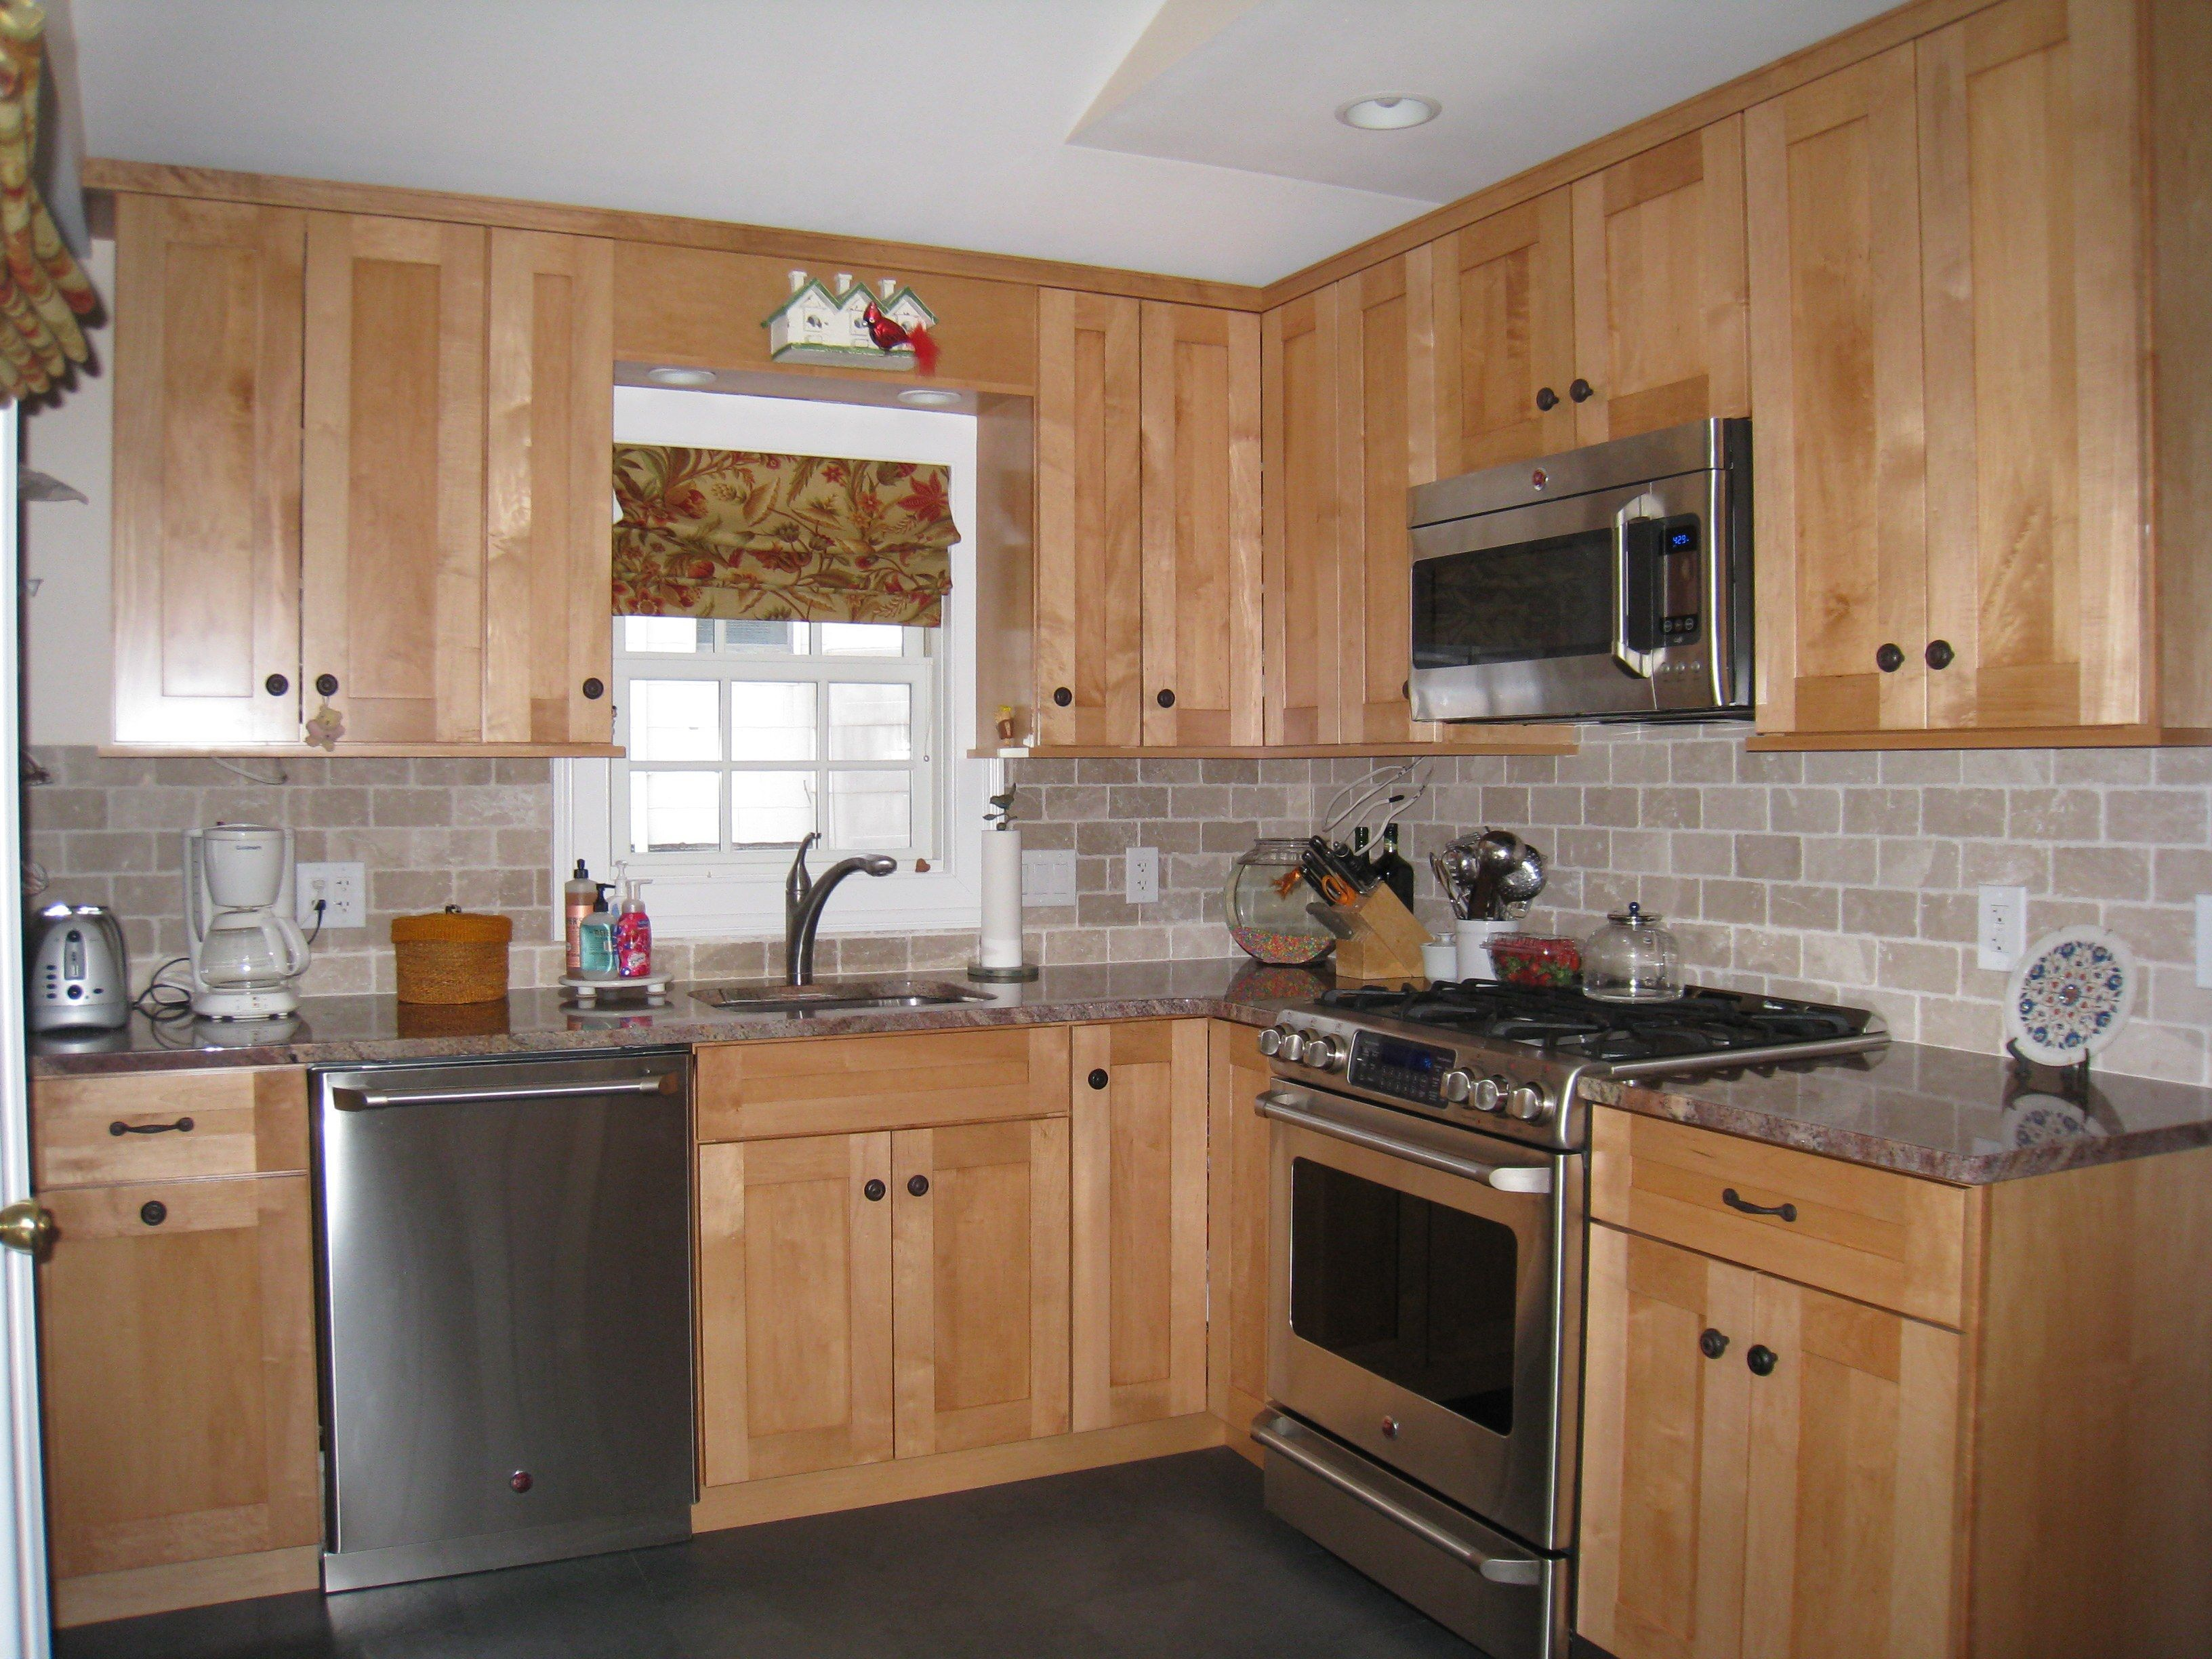 Glorious Maple Kitchen Cabinets With White Pattern Subway Wall Stone